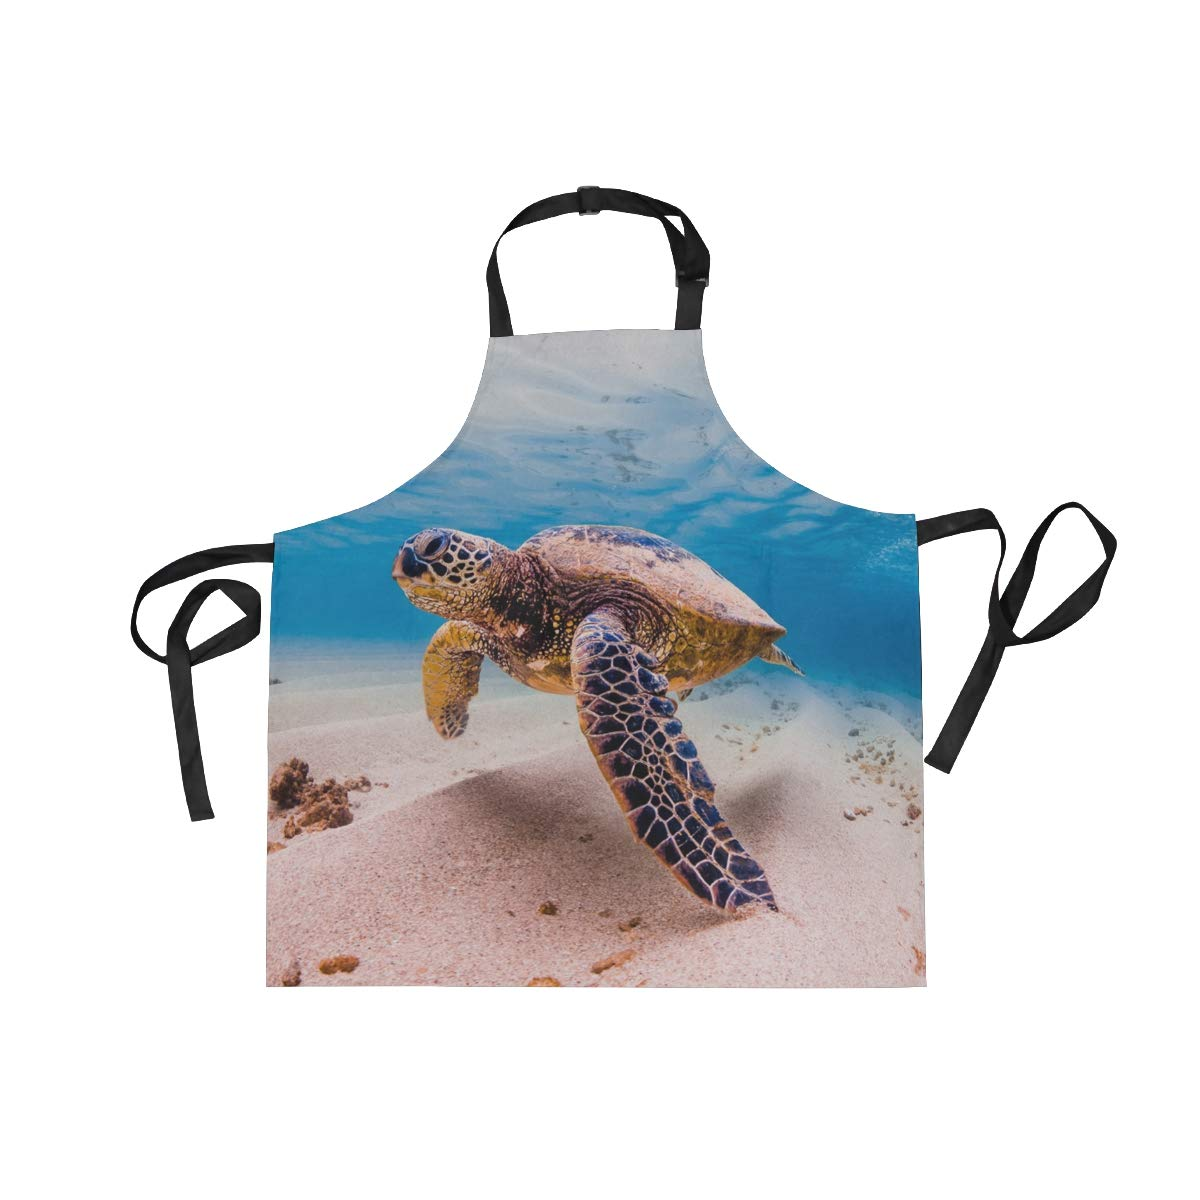 Adult Kitchen Aprons Ocean Marine Life Turtle Underwater Beach Bib Apron with Pockets for Women Men Adjustable Neck Apron Cooking Baking or Kitchen Gardening Unisex Apron,Twill,Multi-Pattern